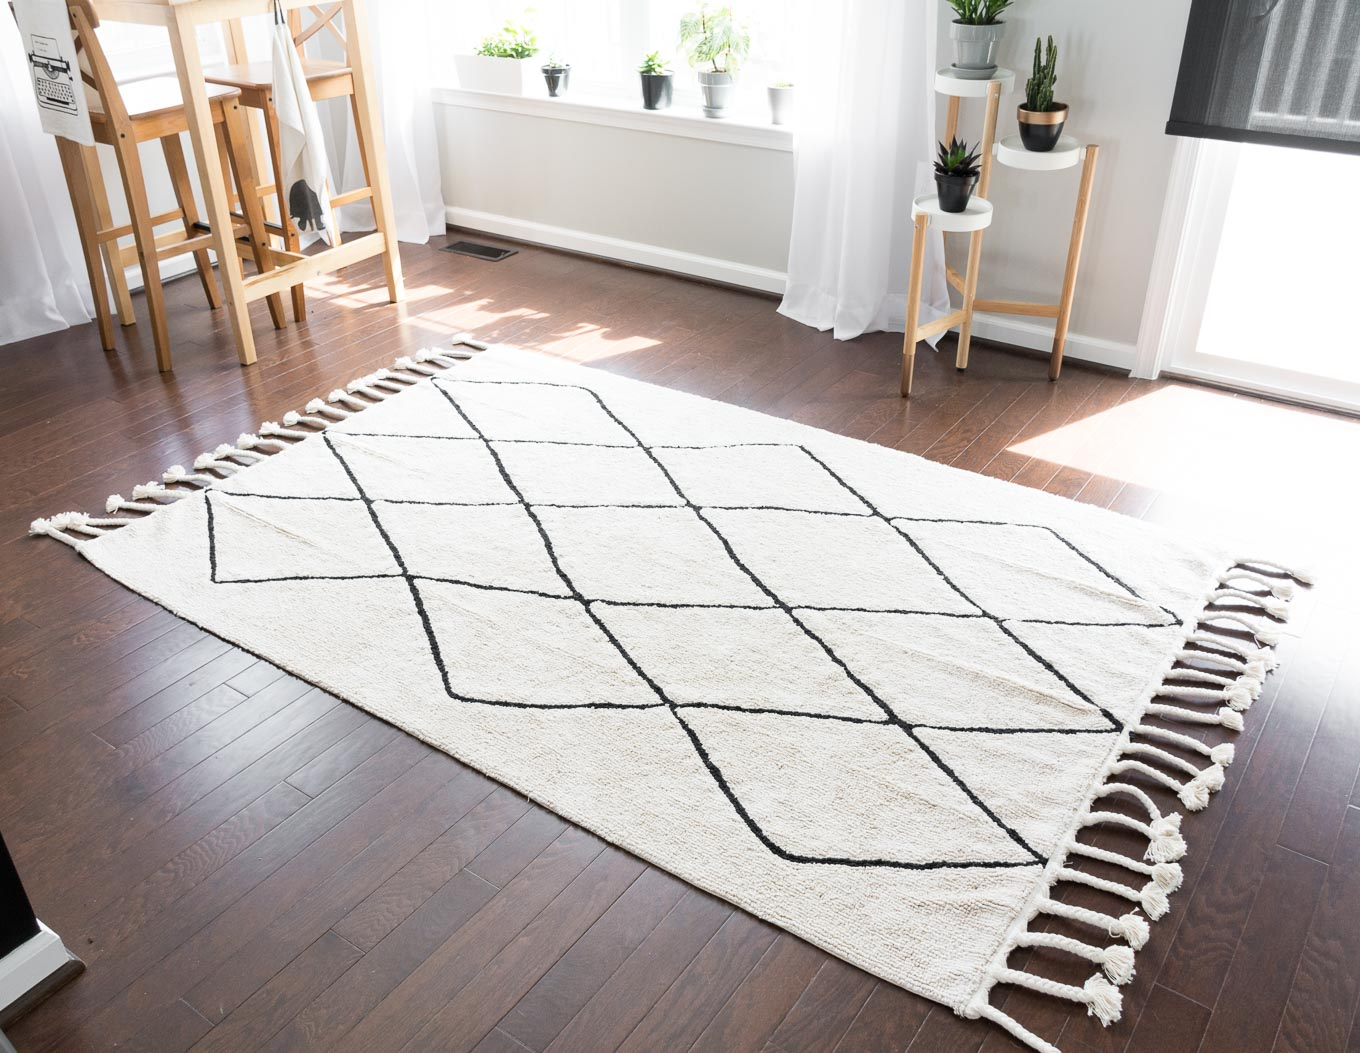 washable rugs from lorena canals VEISXDK